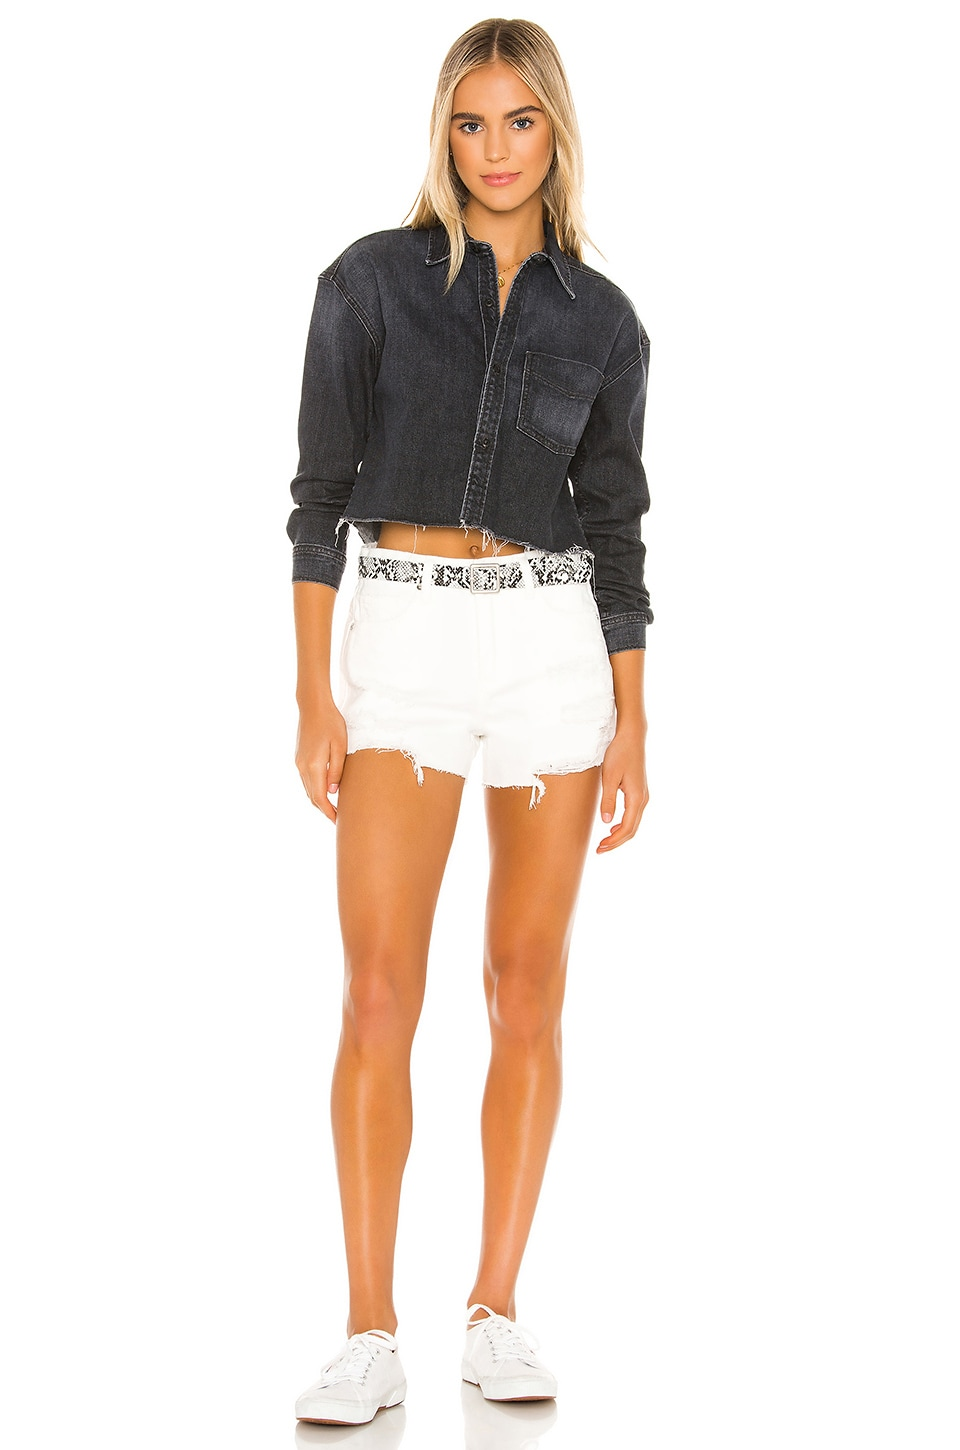 Barrow Vintage High Rise Denim With Snake Belt Short, view 4, click to view large image.